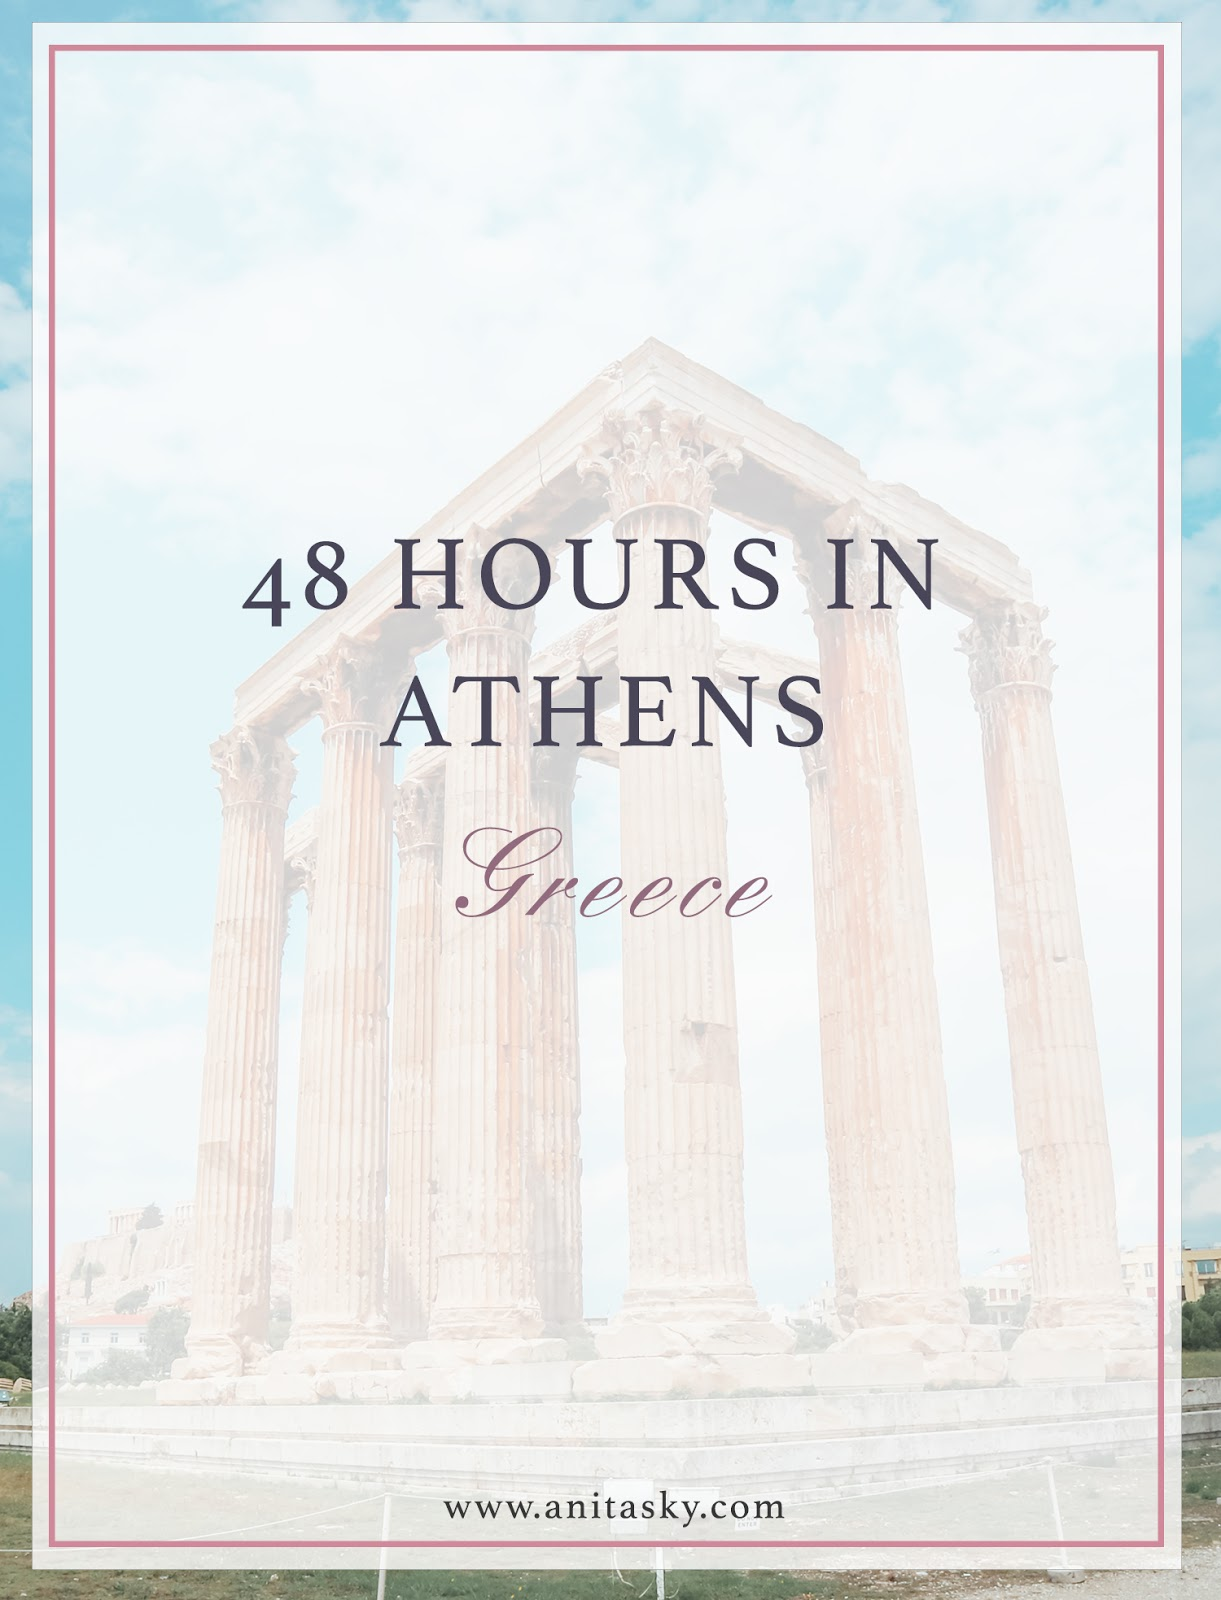 Spending 48 hours in Athens, Greece